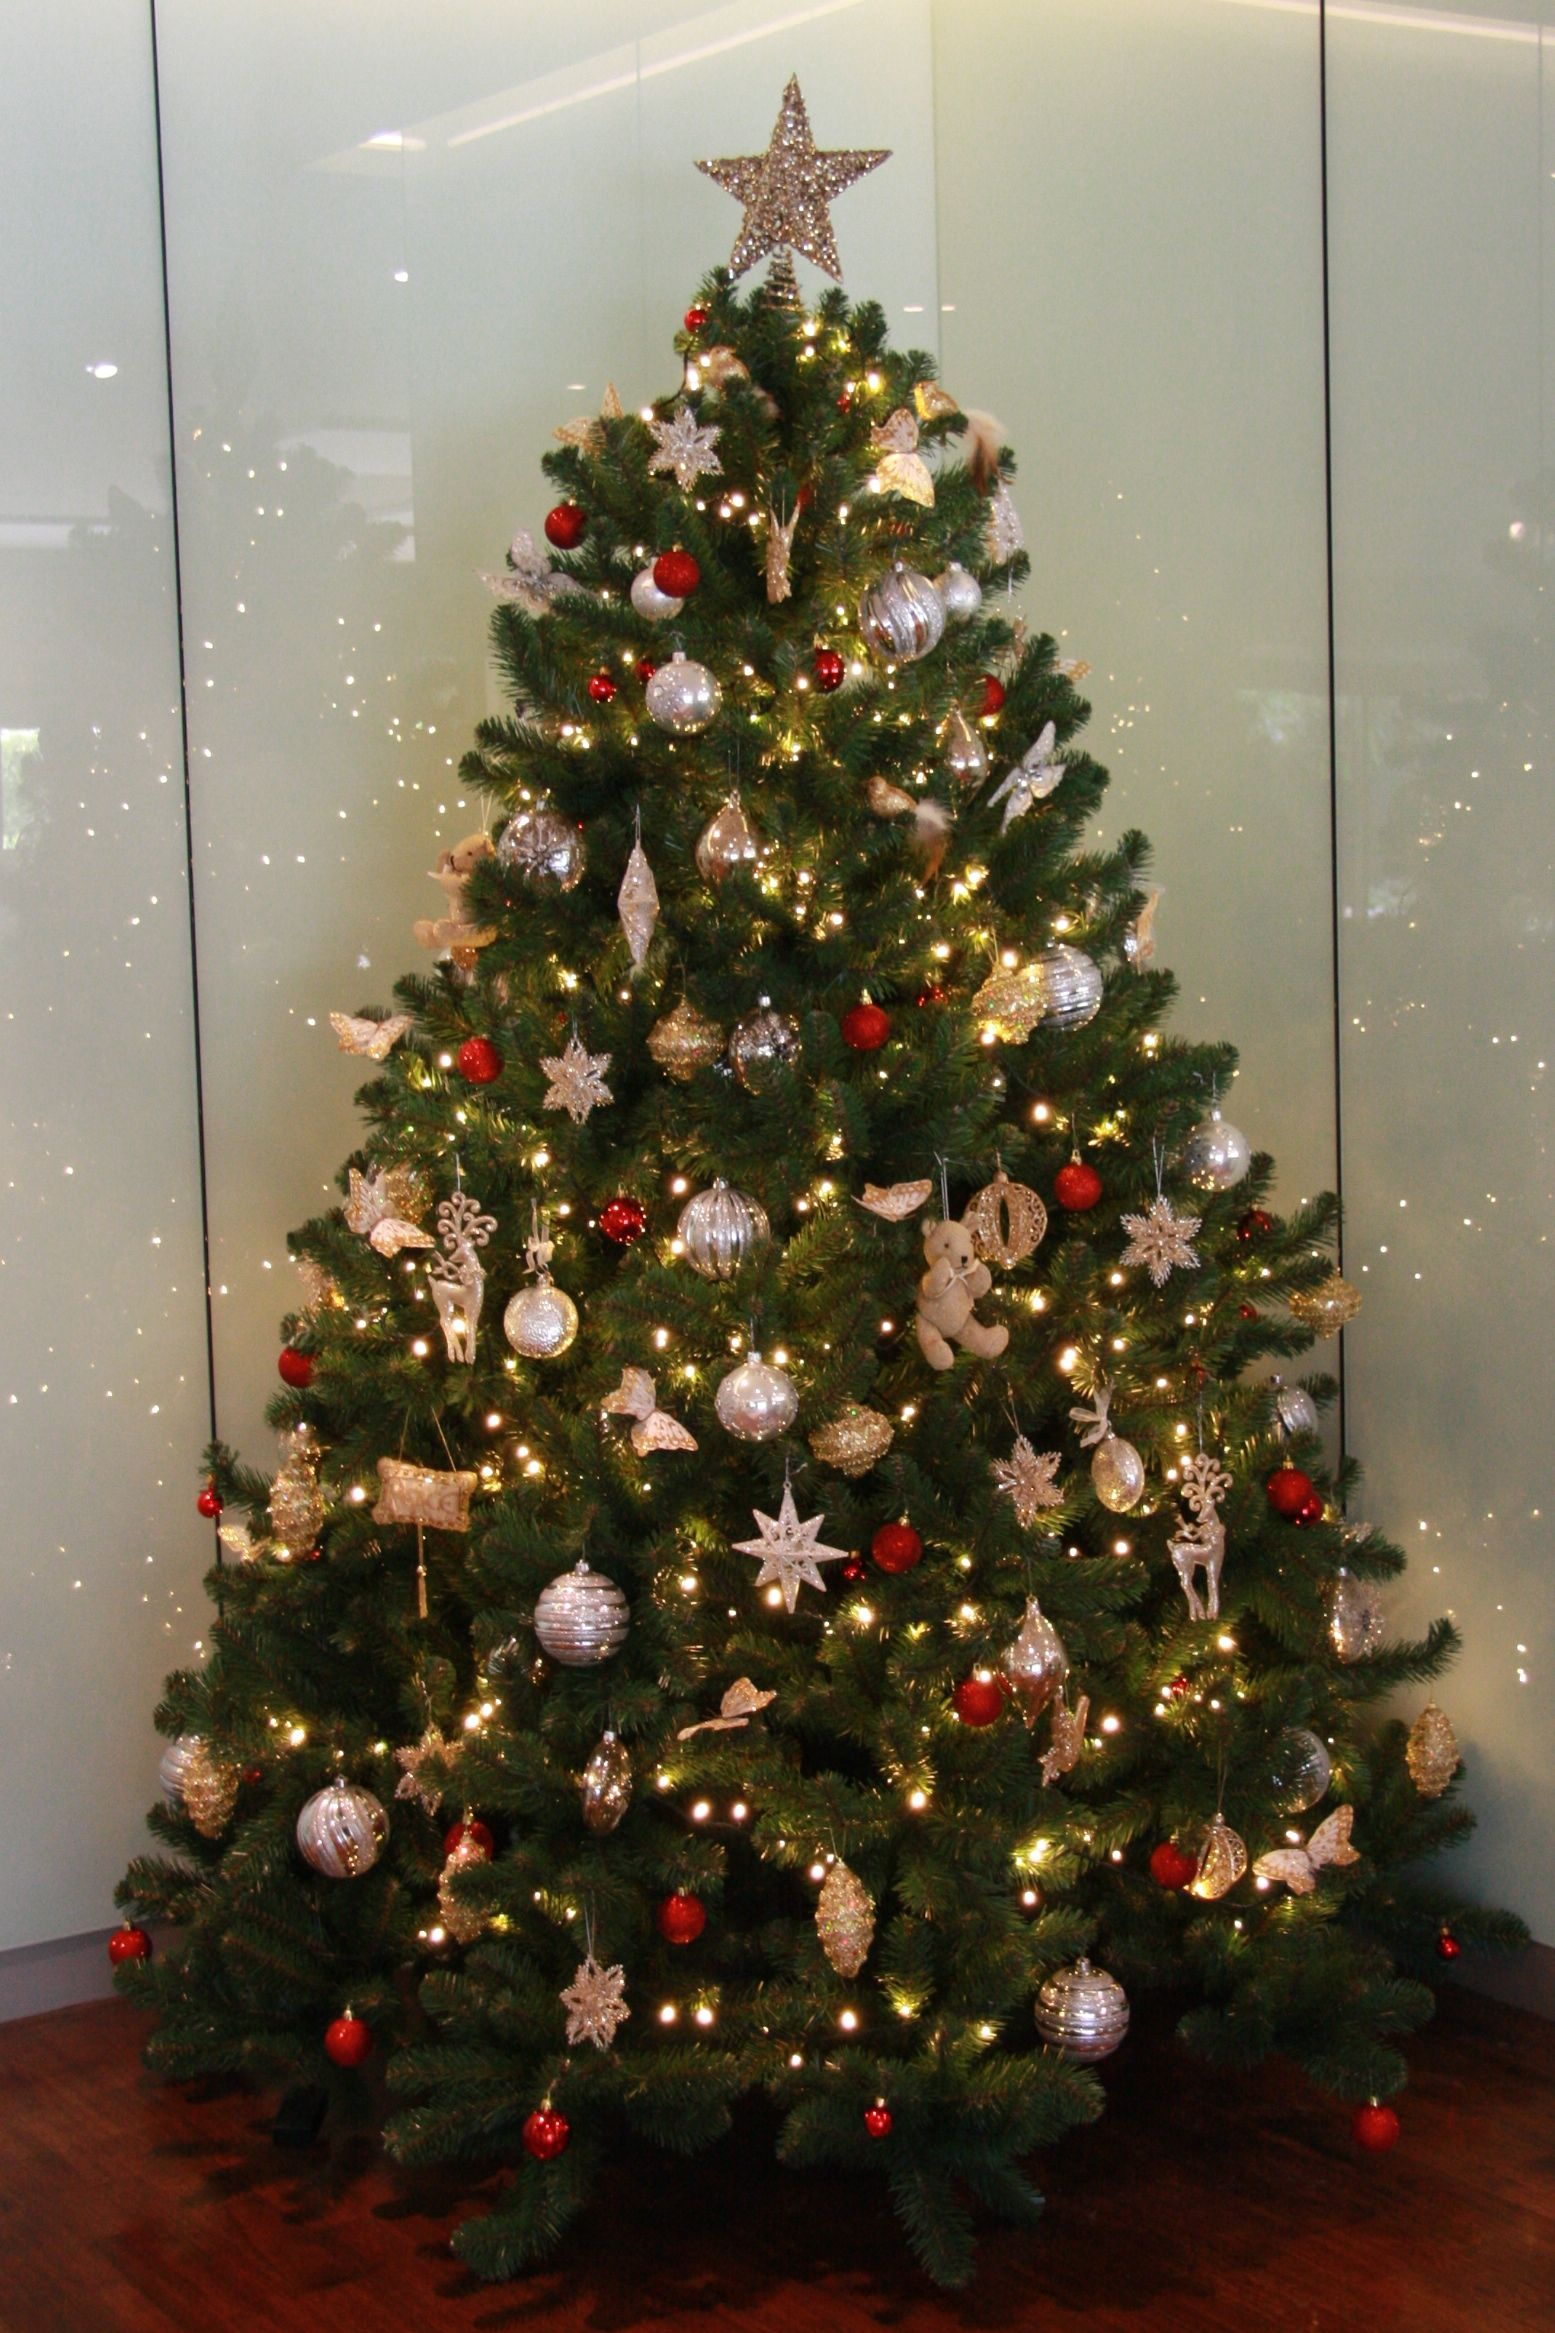 Decorated Christmas Tree Photo Gallery | Decorated Christmas Tree ...